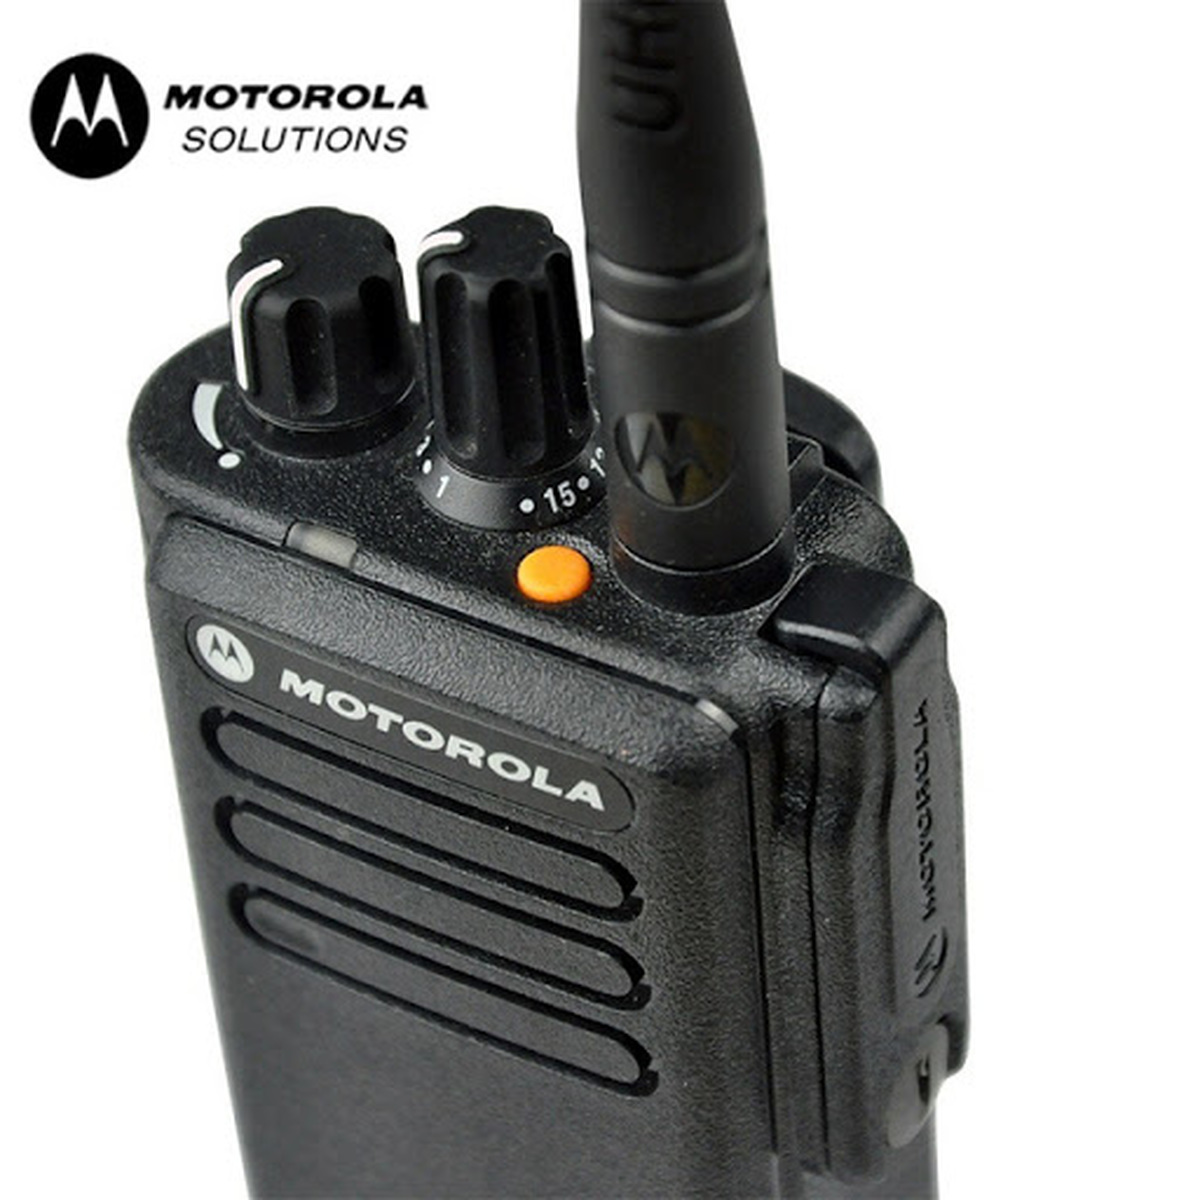 Radio Motorola DGP5050e Digital